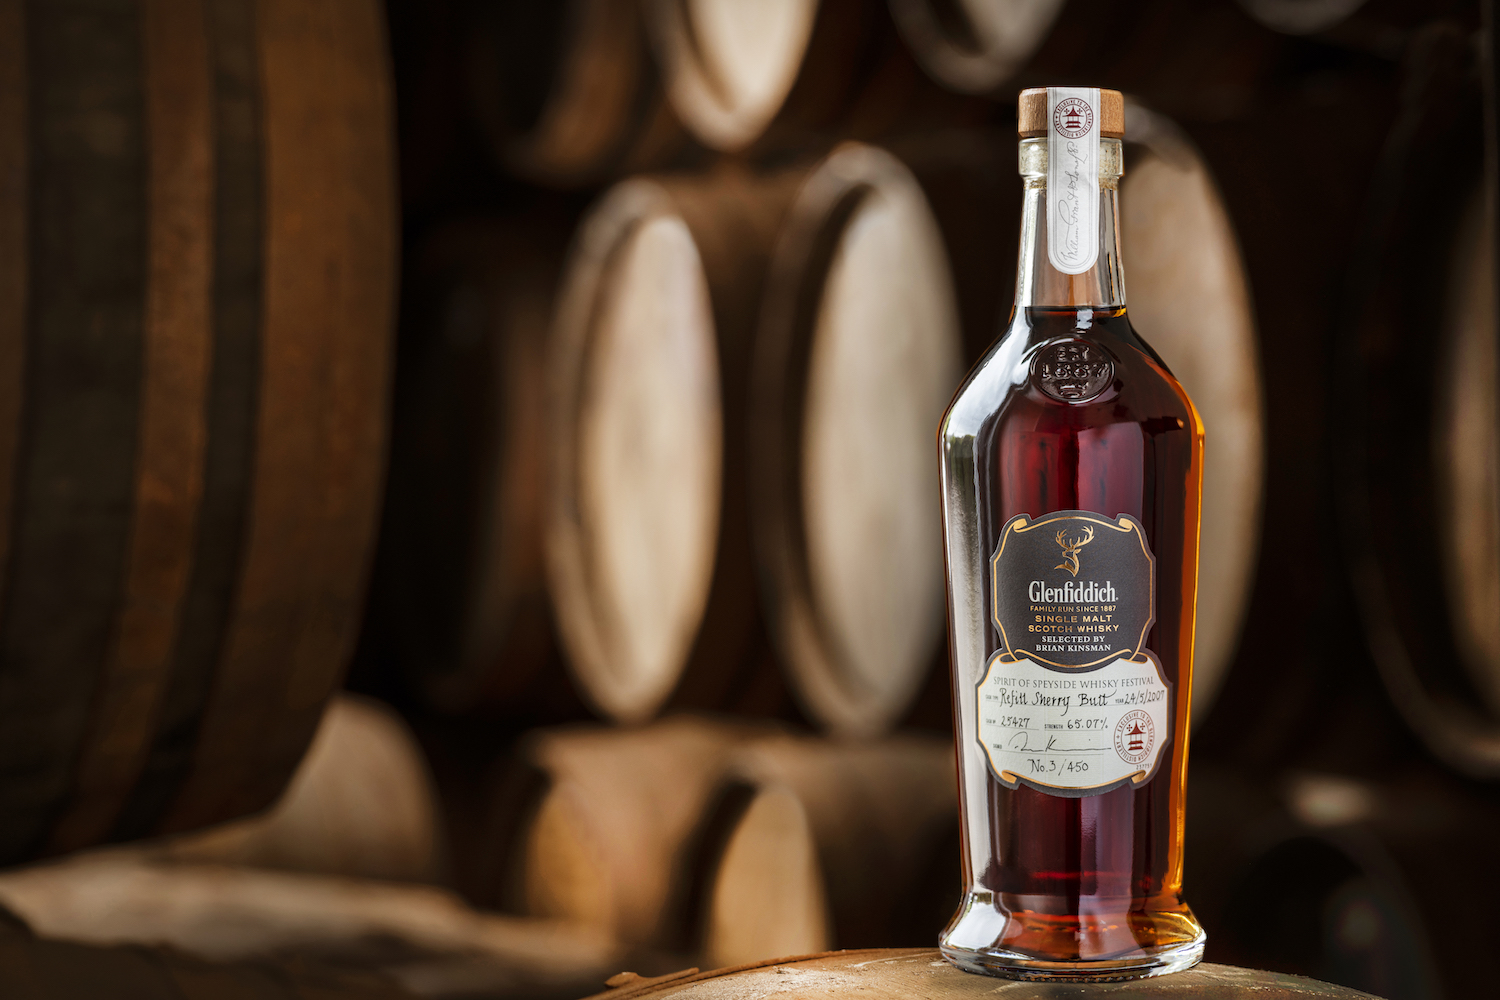 Glenfiddich To Auction A Limited Edition Whisky To Aid Covid-19 Relief photo